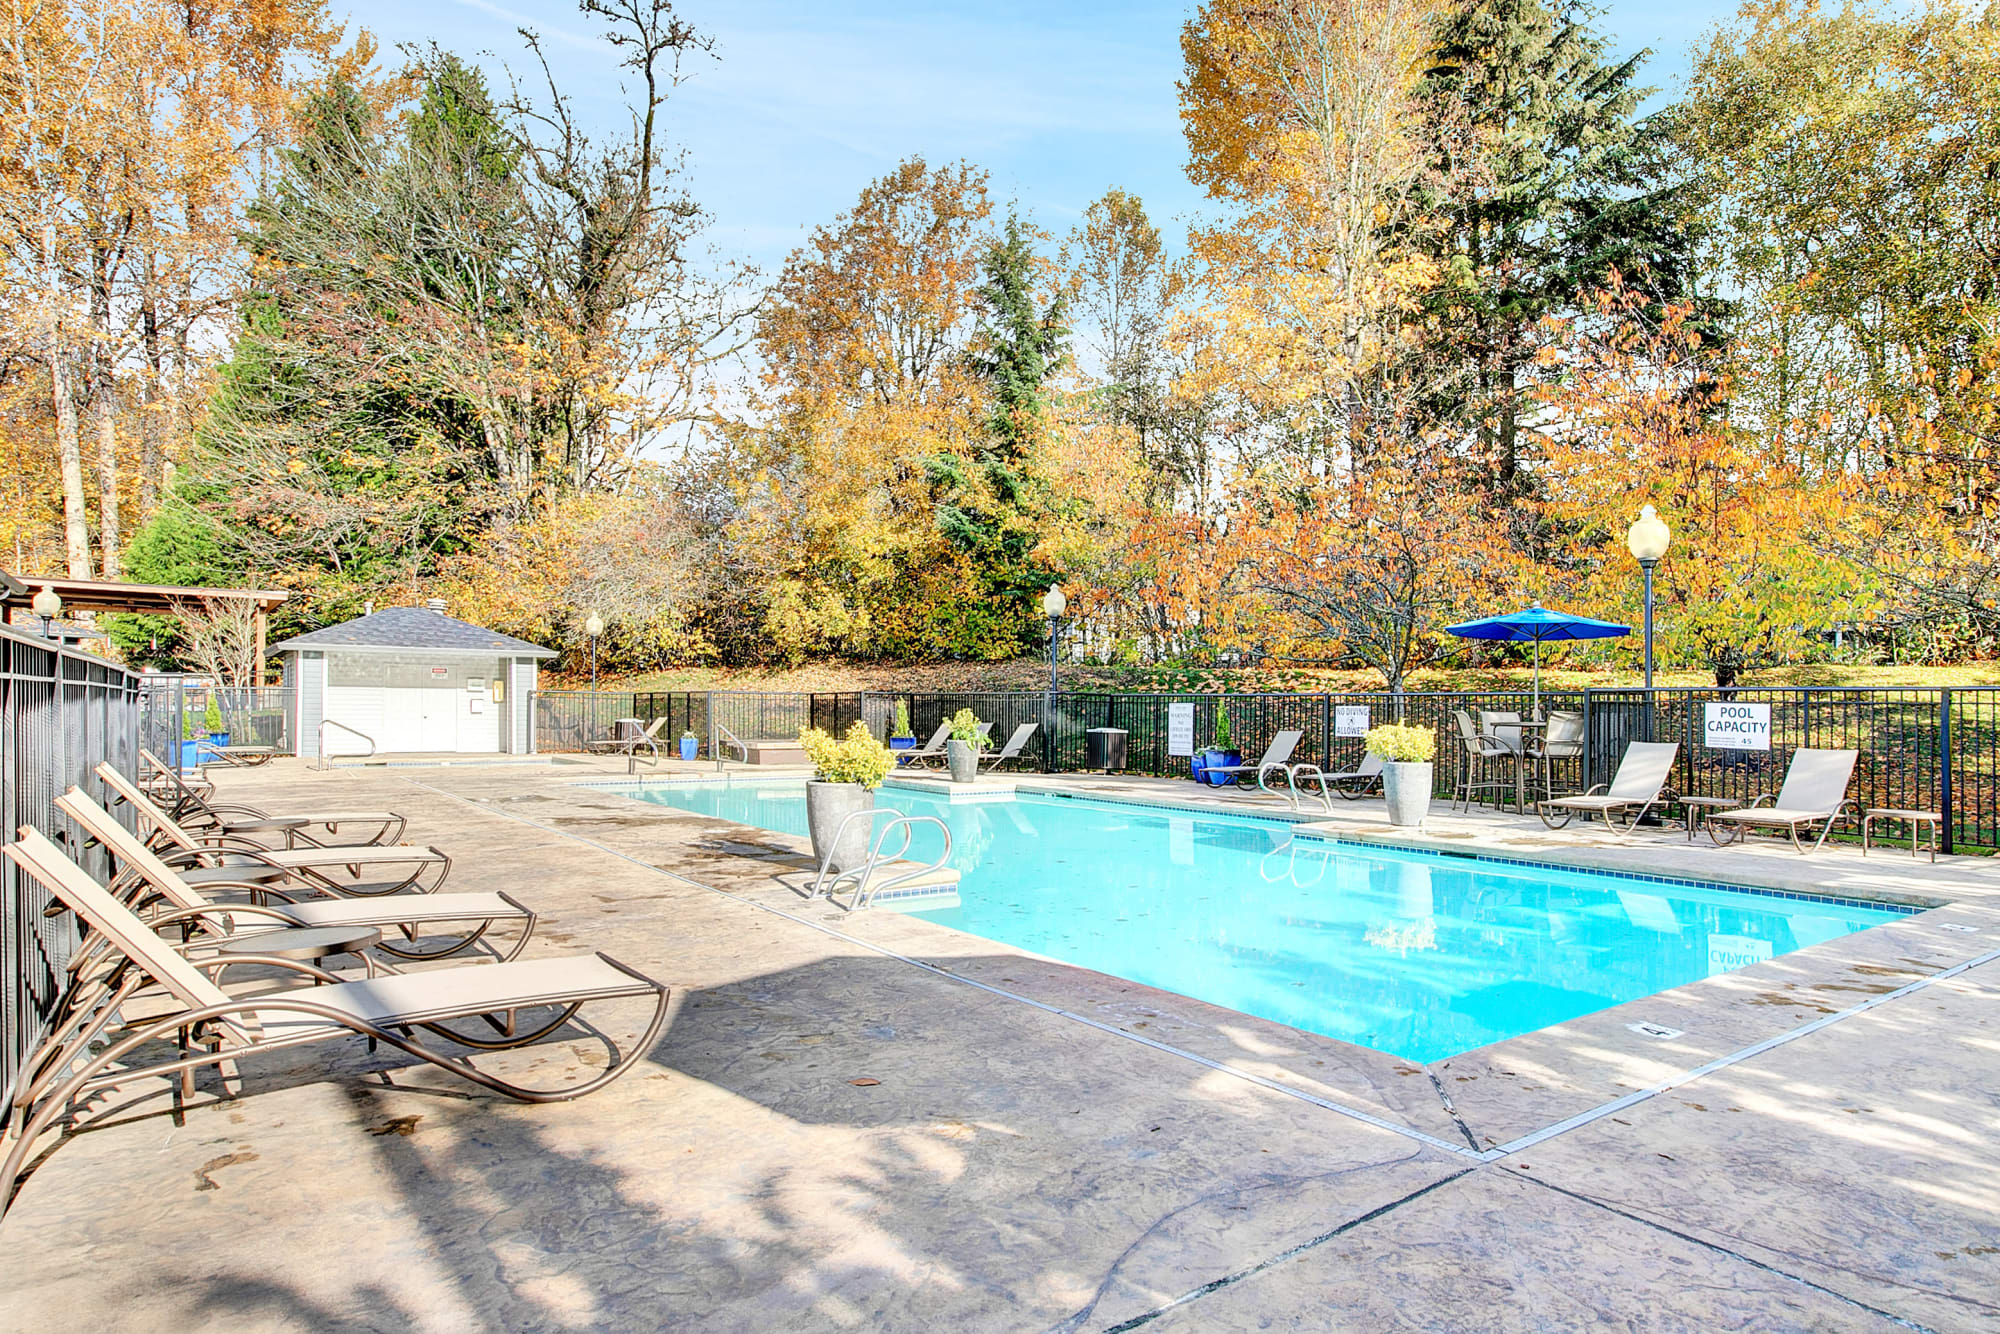 Pool at Pebble Cove Apartments in Renton